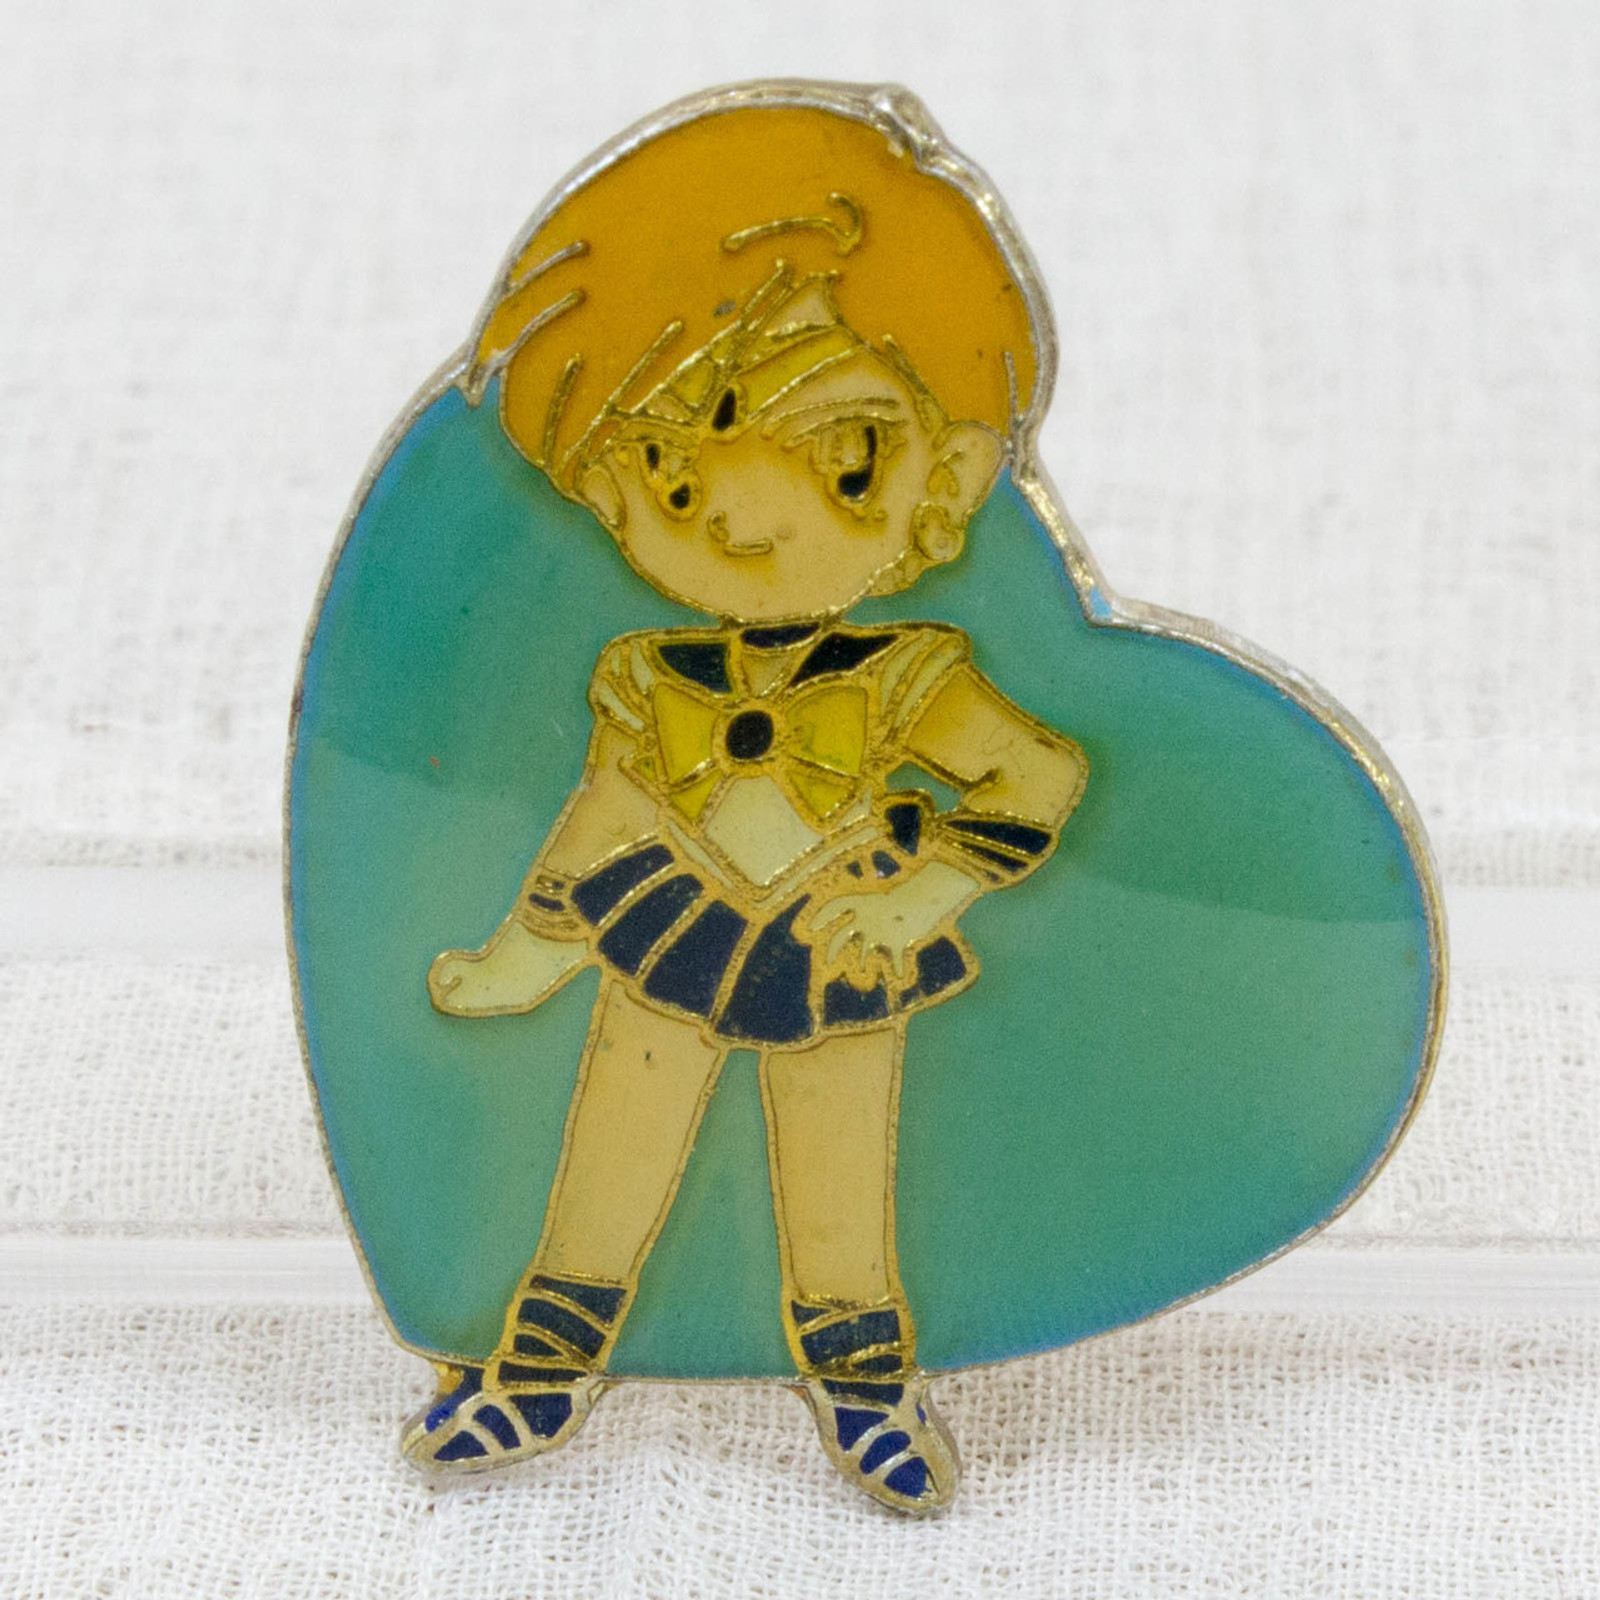 Sailor Moon Sailor Uranus (Haruka Tenoh) Metal Pins Badge JAPAN ANIME